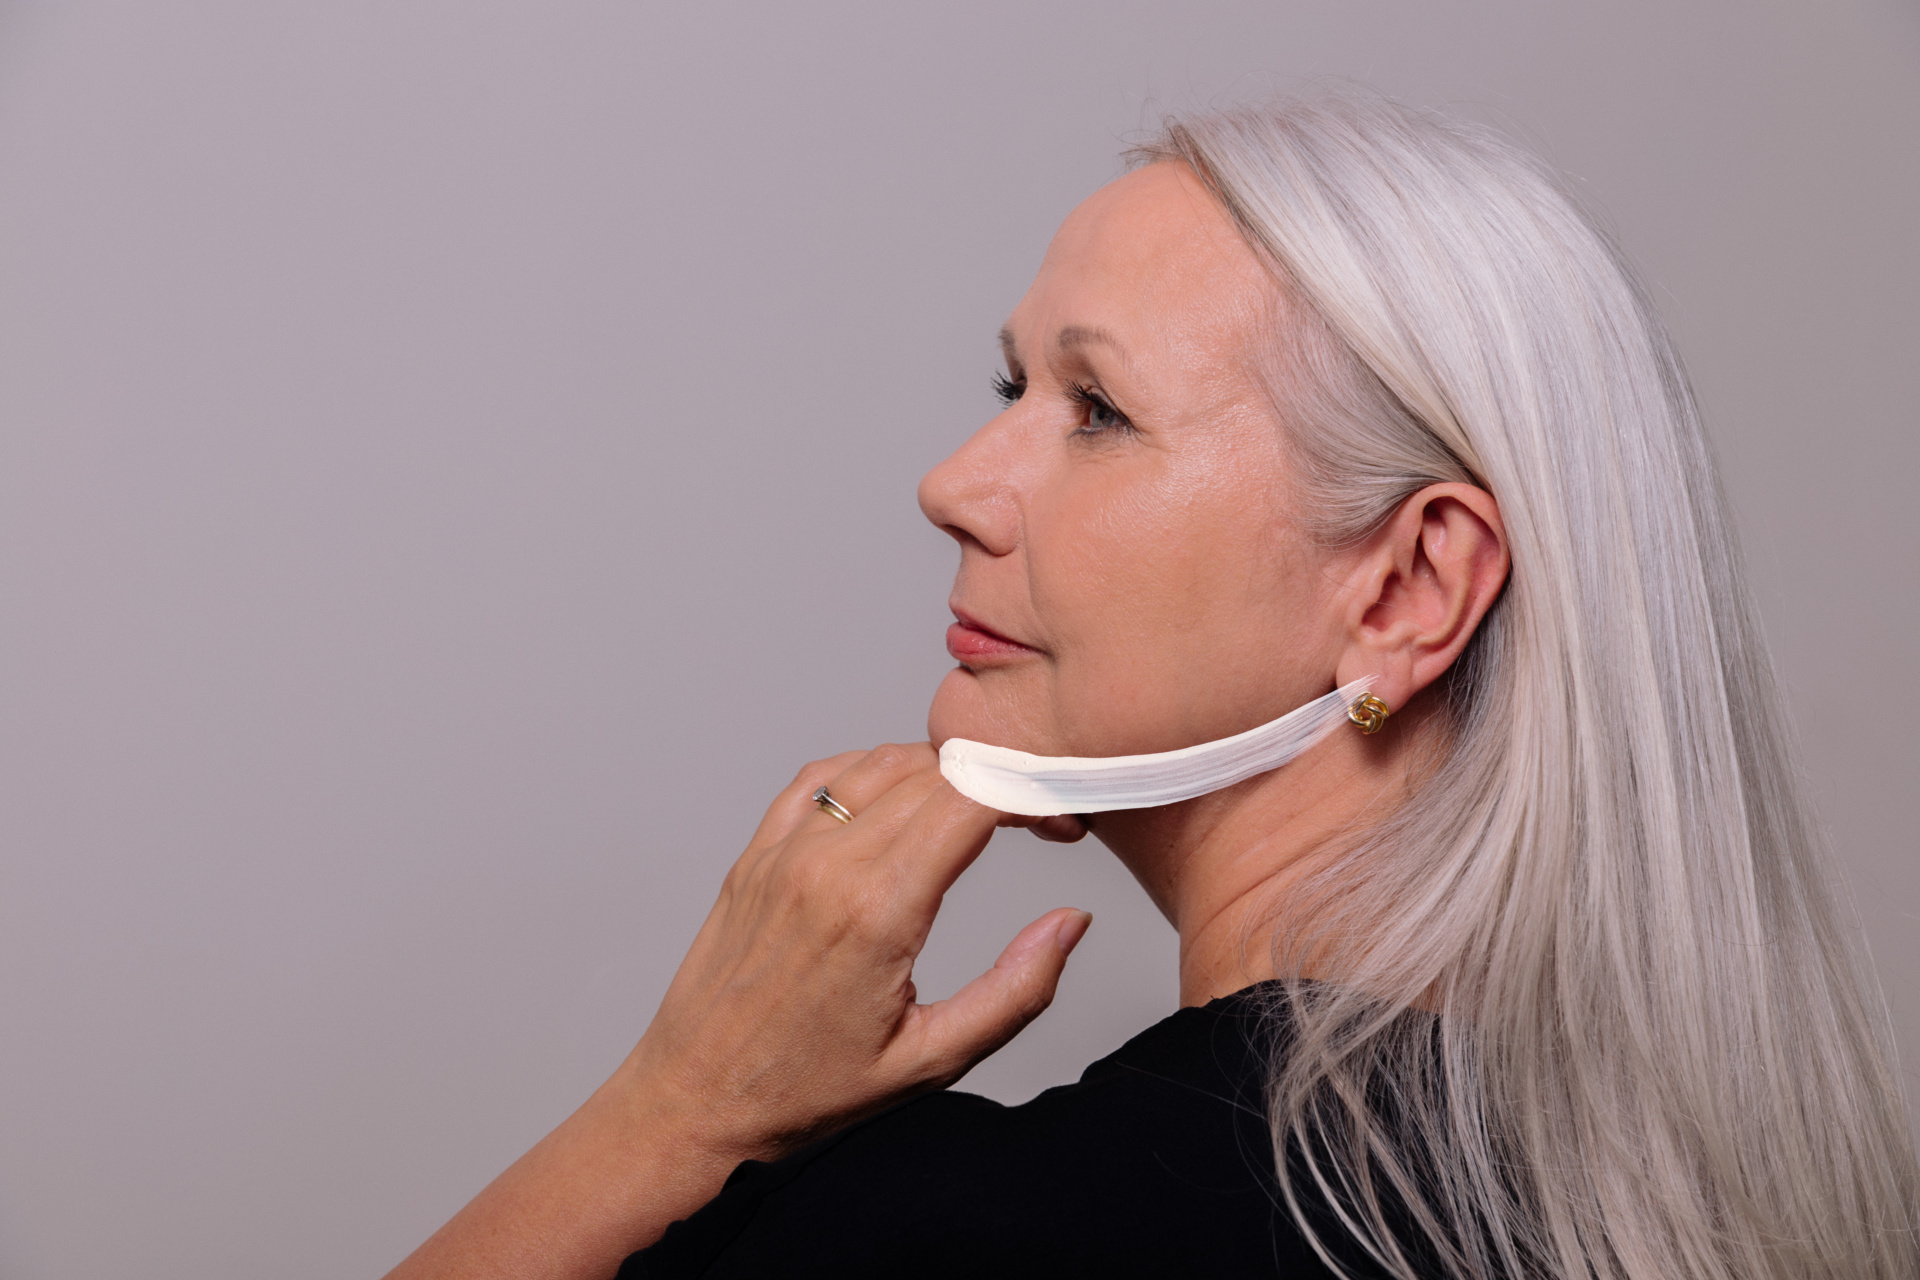 Poised woman resting hand lightly on chin with white brushstroke following chin line, designed for Harley Academy Clinic. Design by Barefaced Studios, design agency Islington.